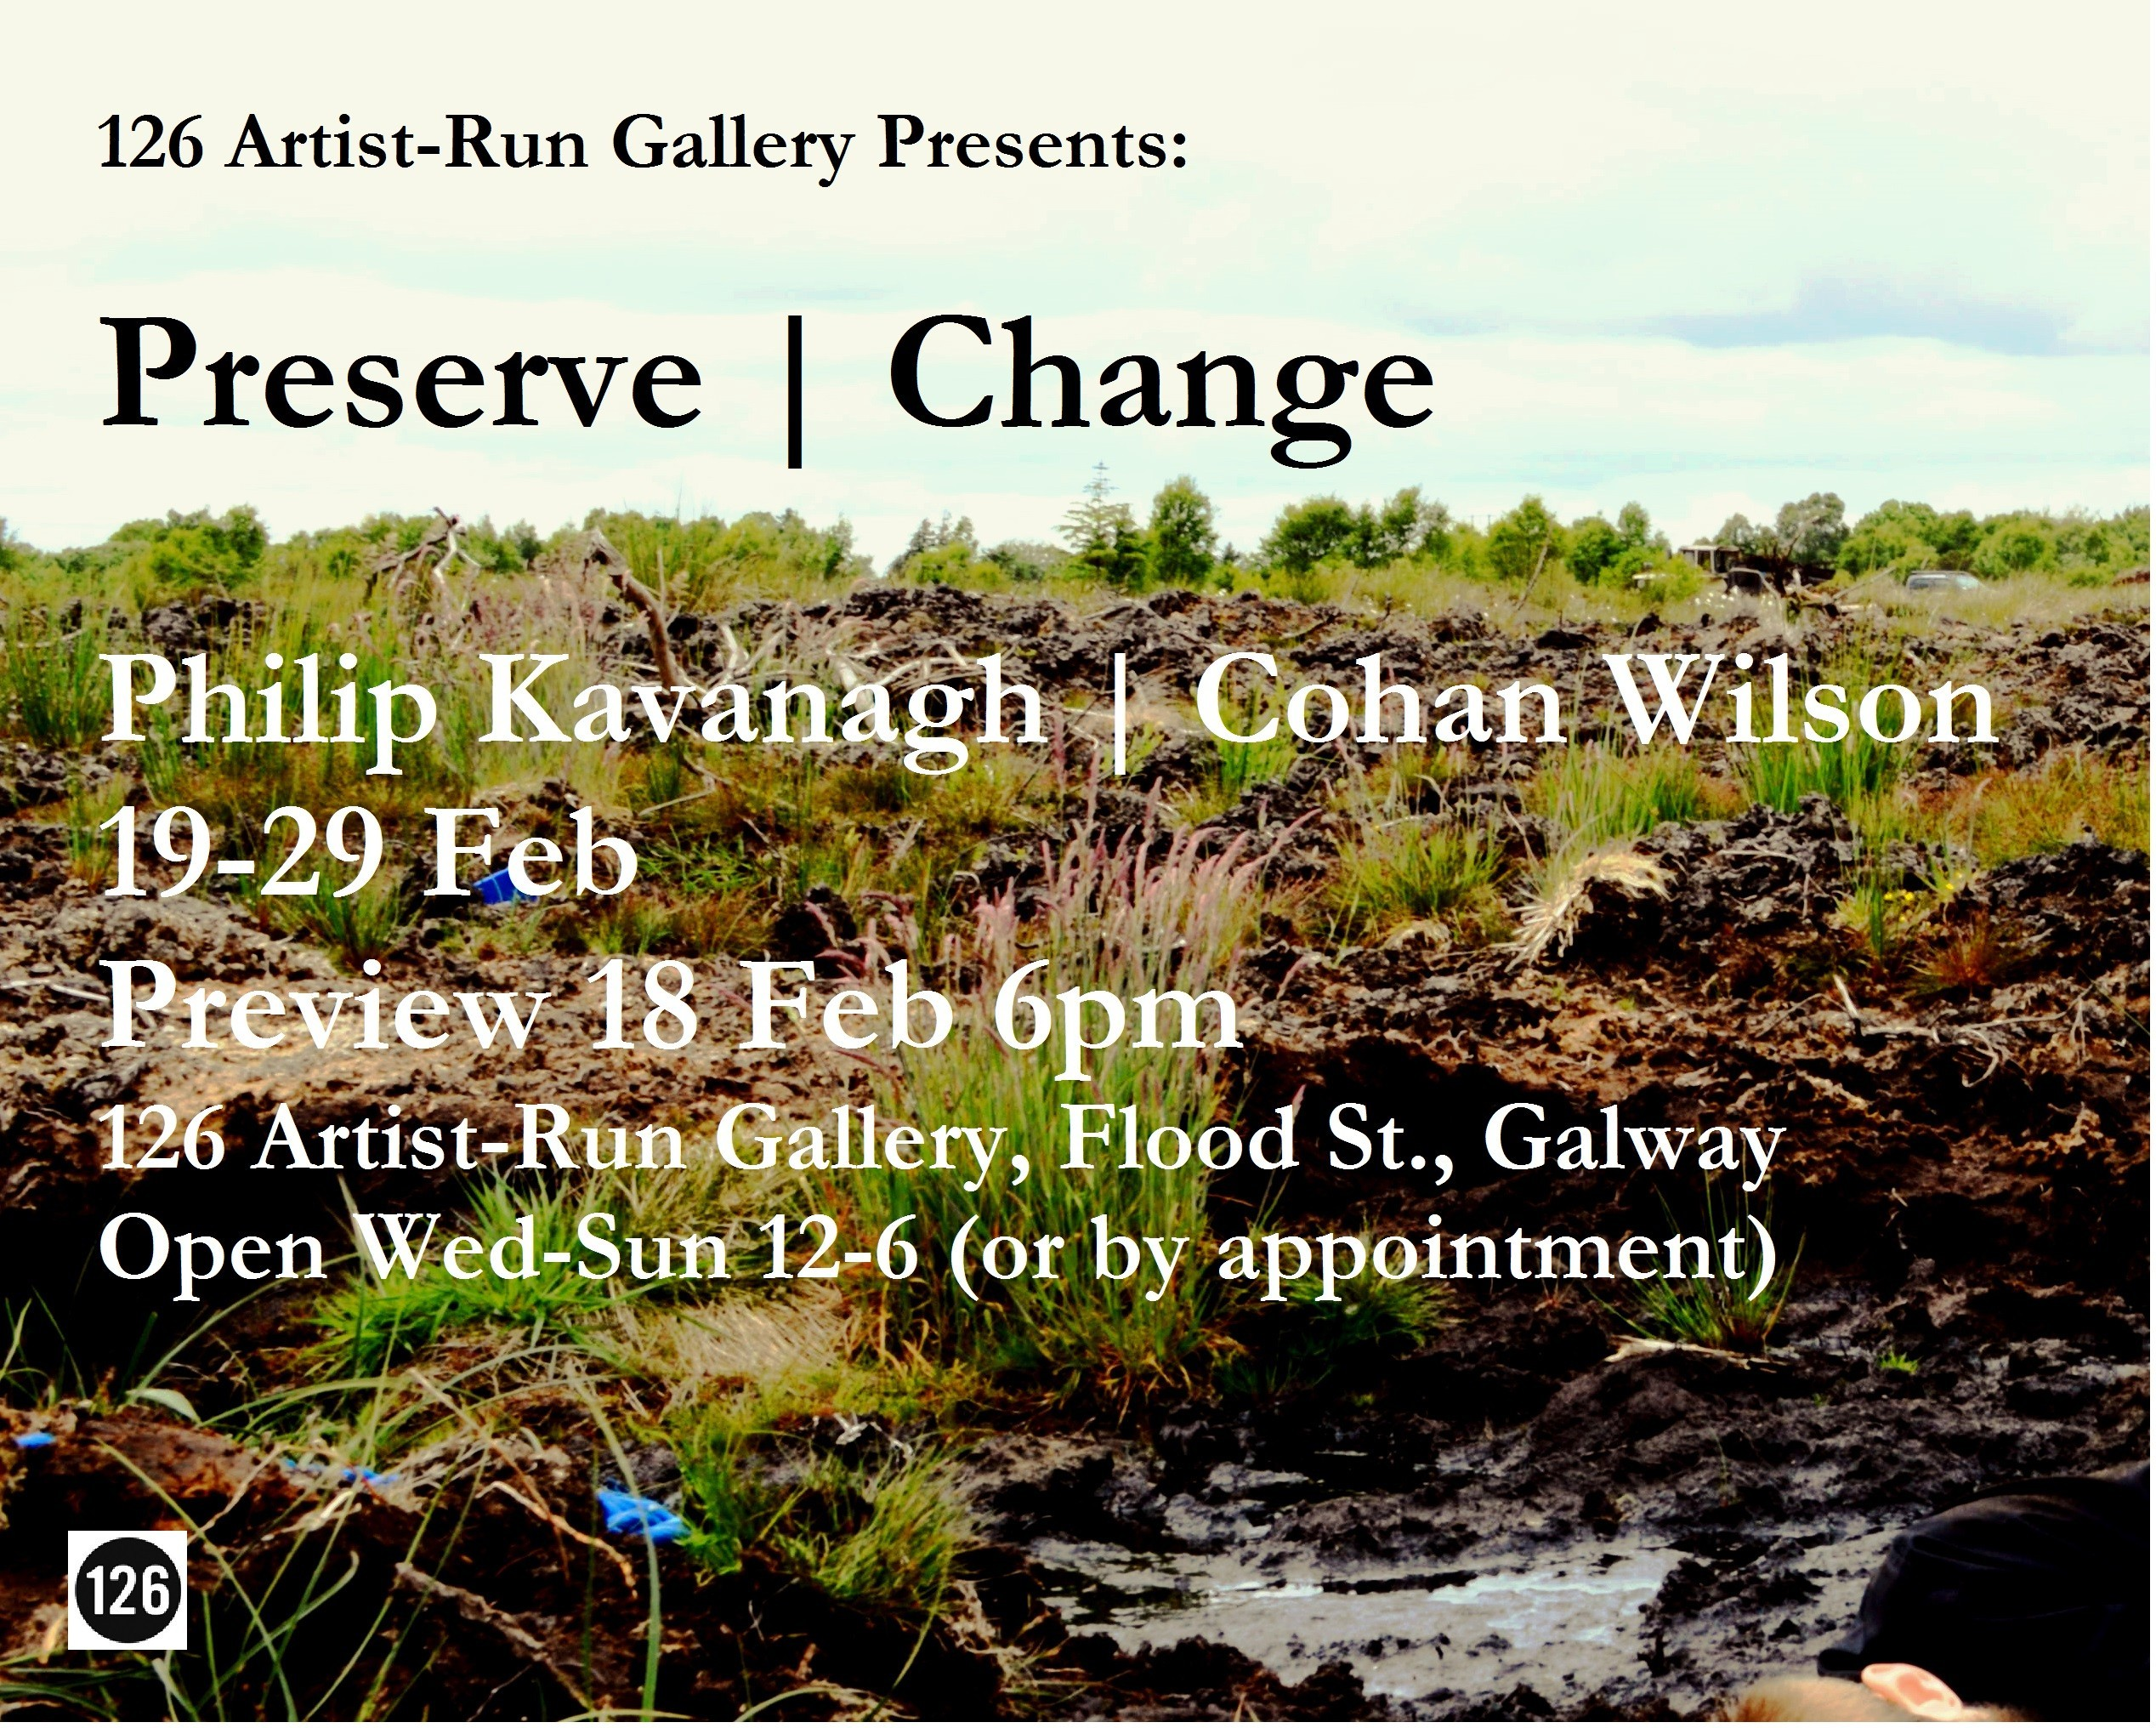 Opening Thurs 18 Feb 6pm Preserve | Change